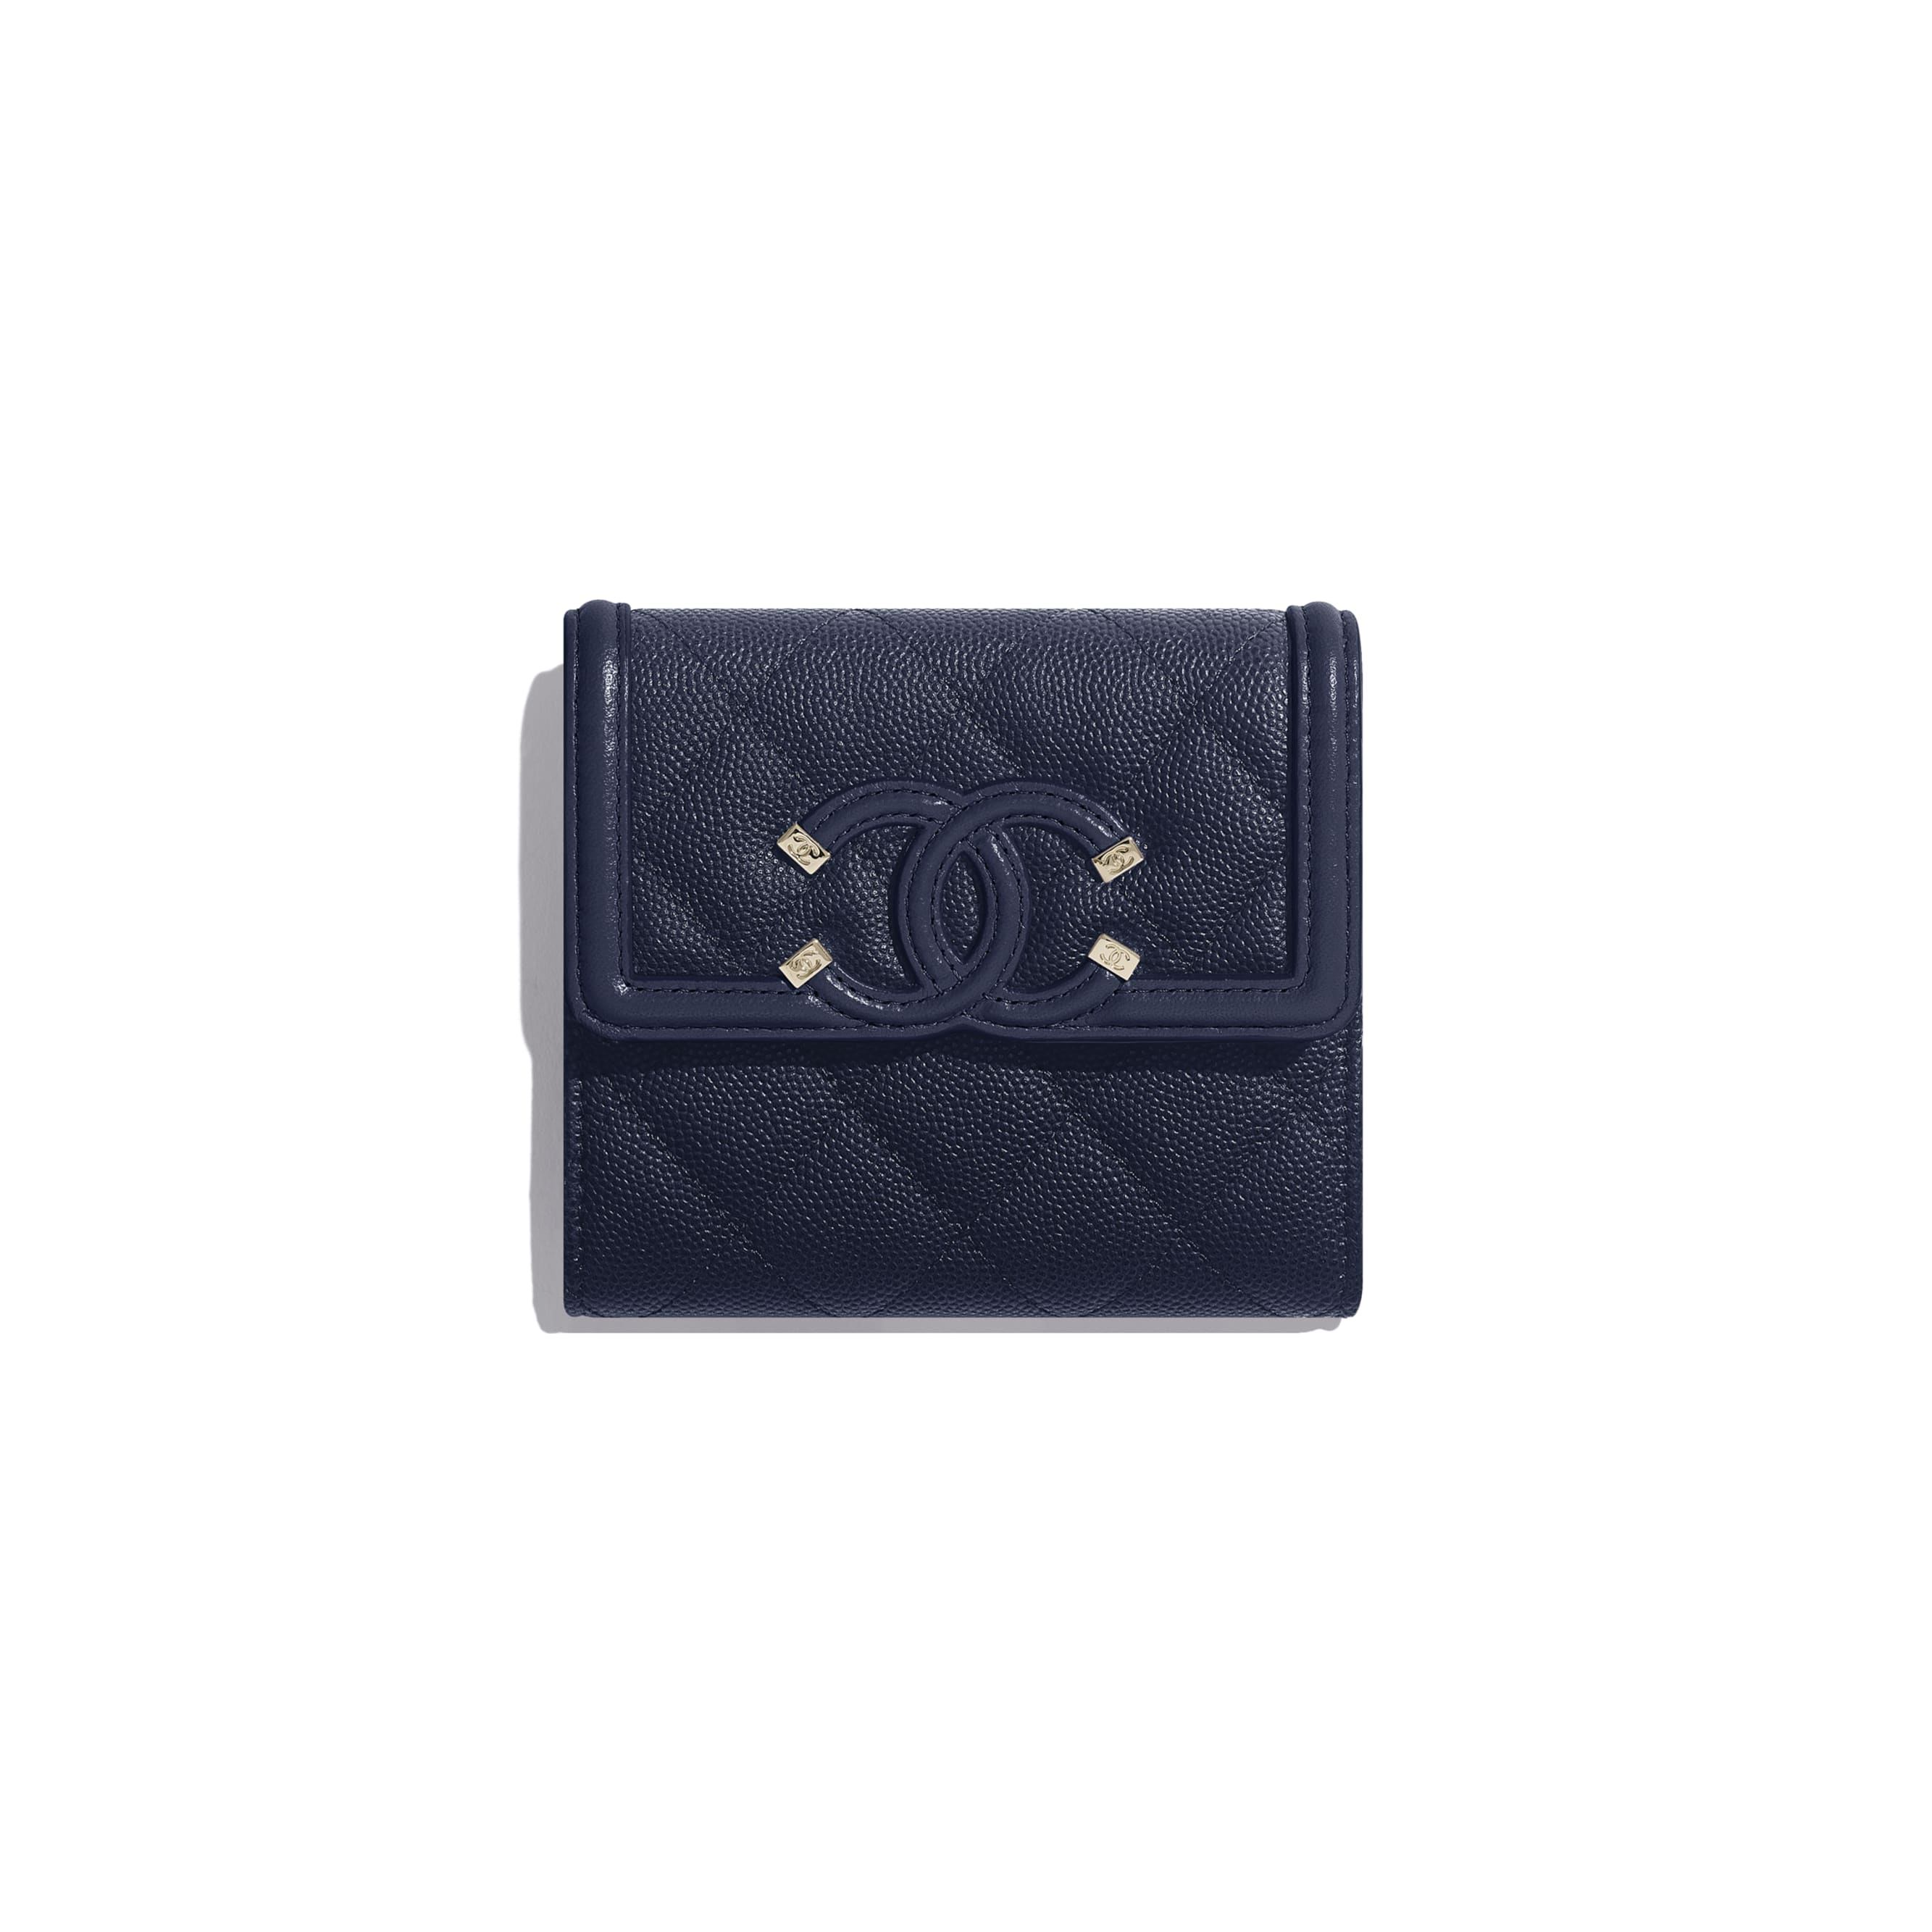 Small Flap Wallet - Navy Blue - Grained Calfskin & Gold-Tone Metal - Default view - see standard sized version